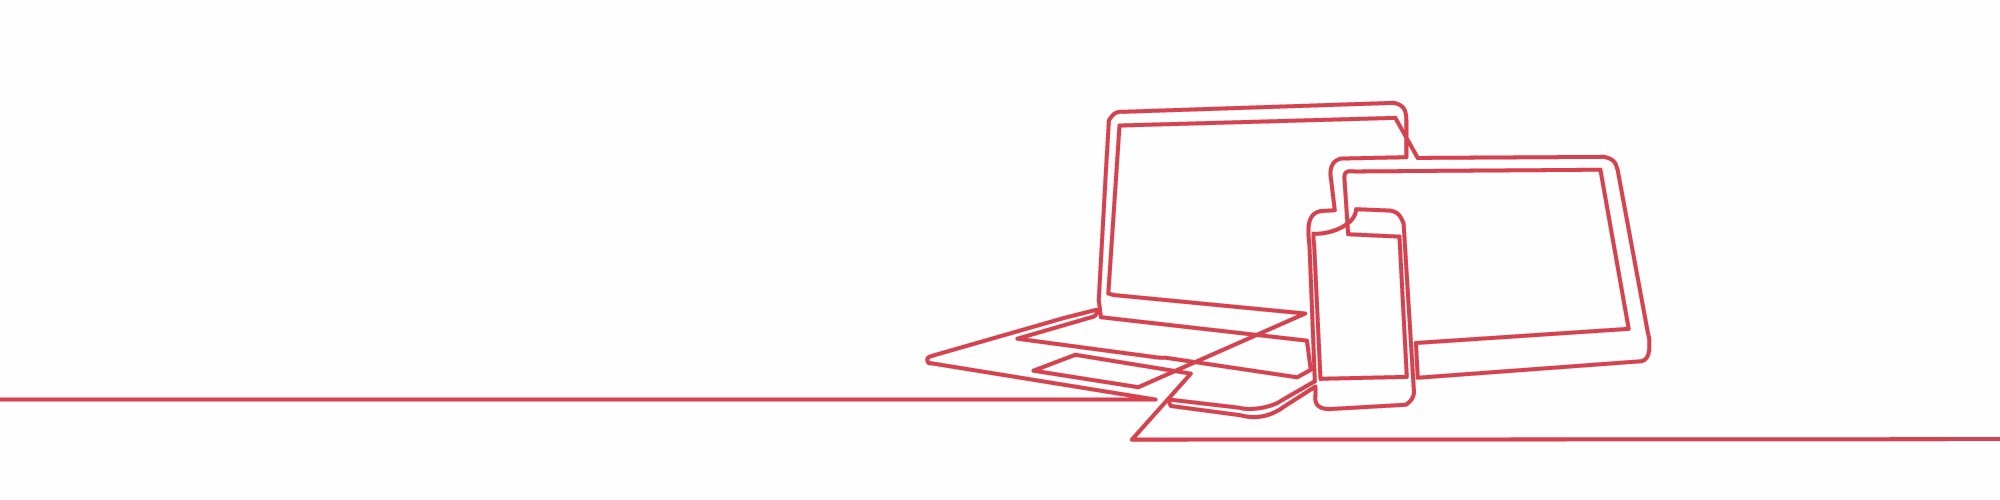 Continuous line art, laptop, phone and iPad